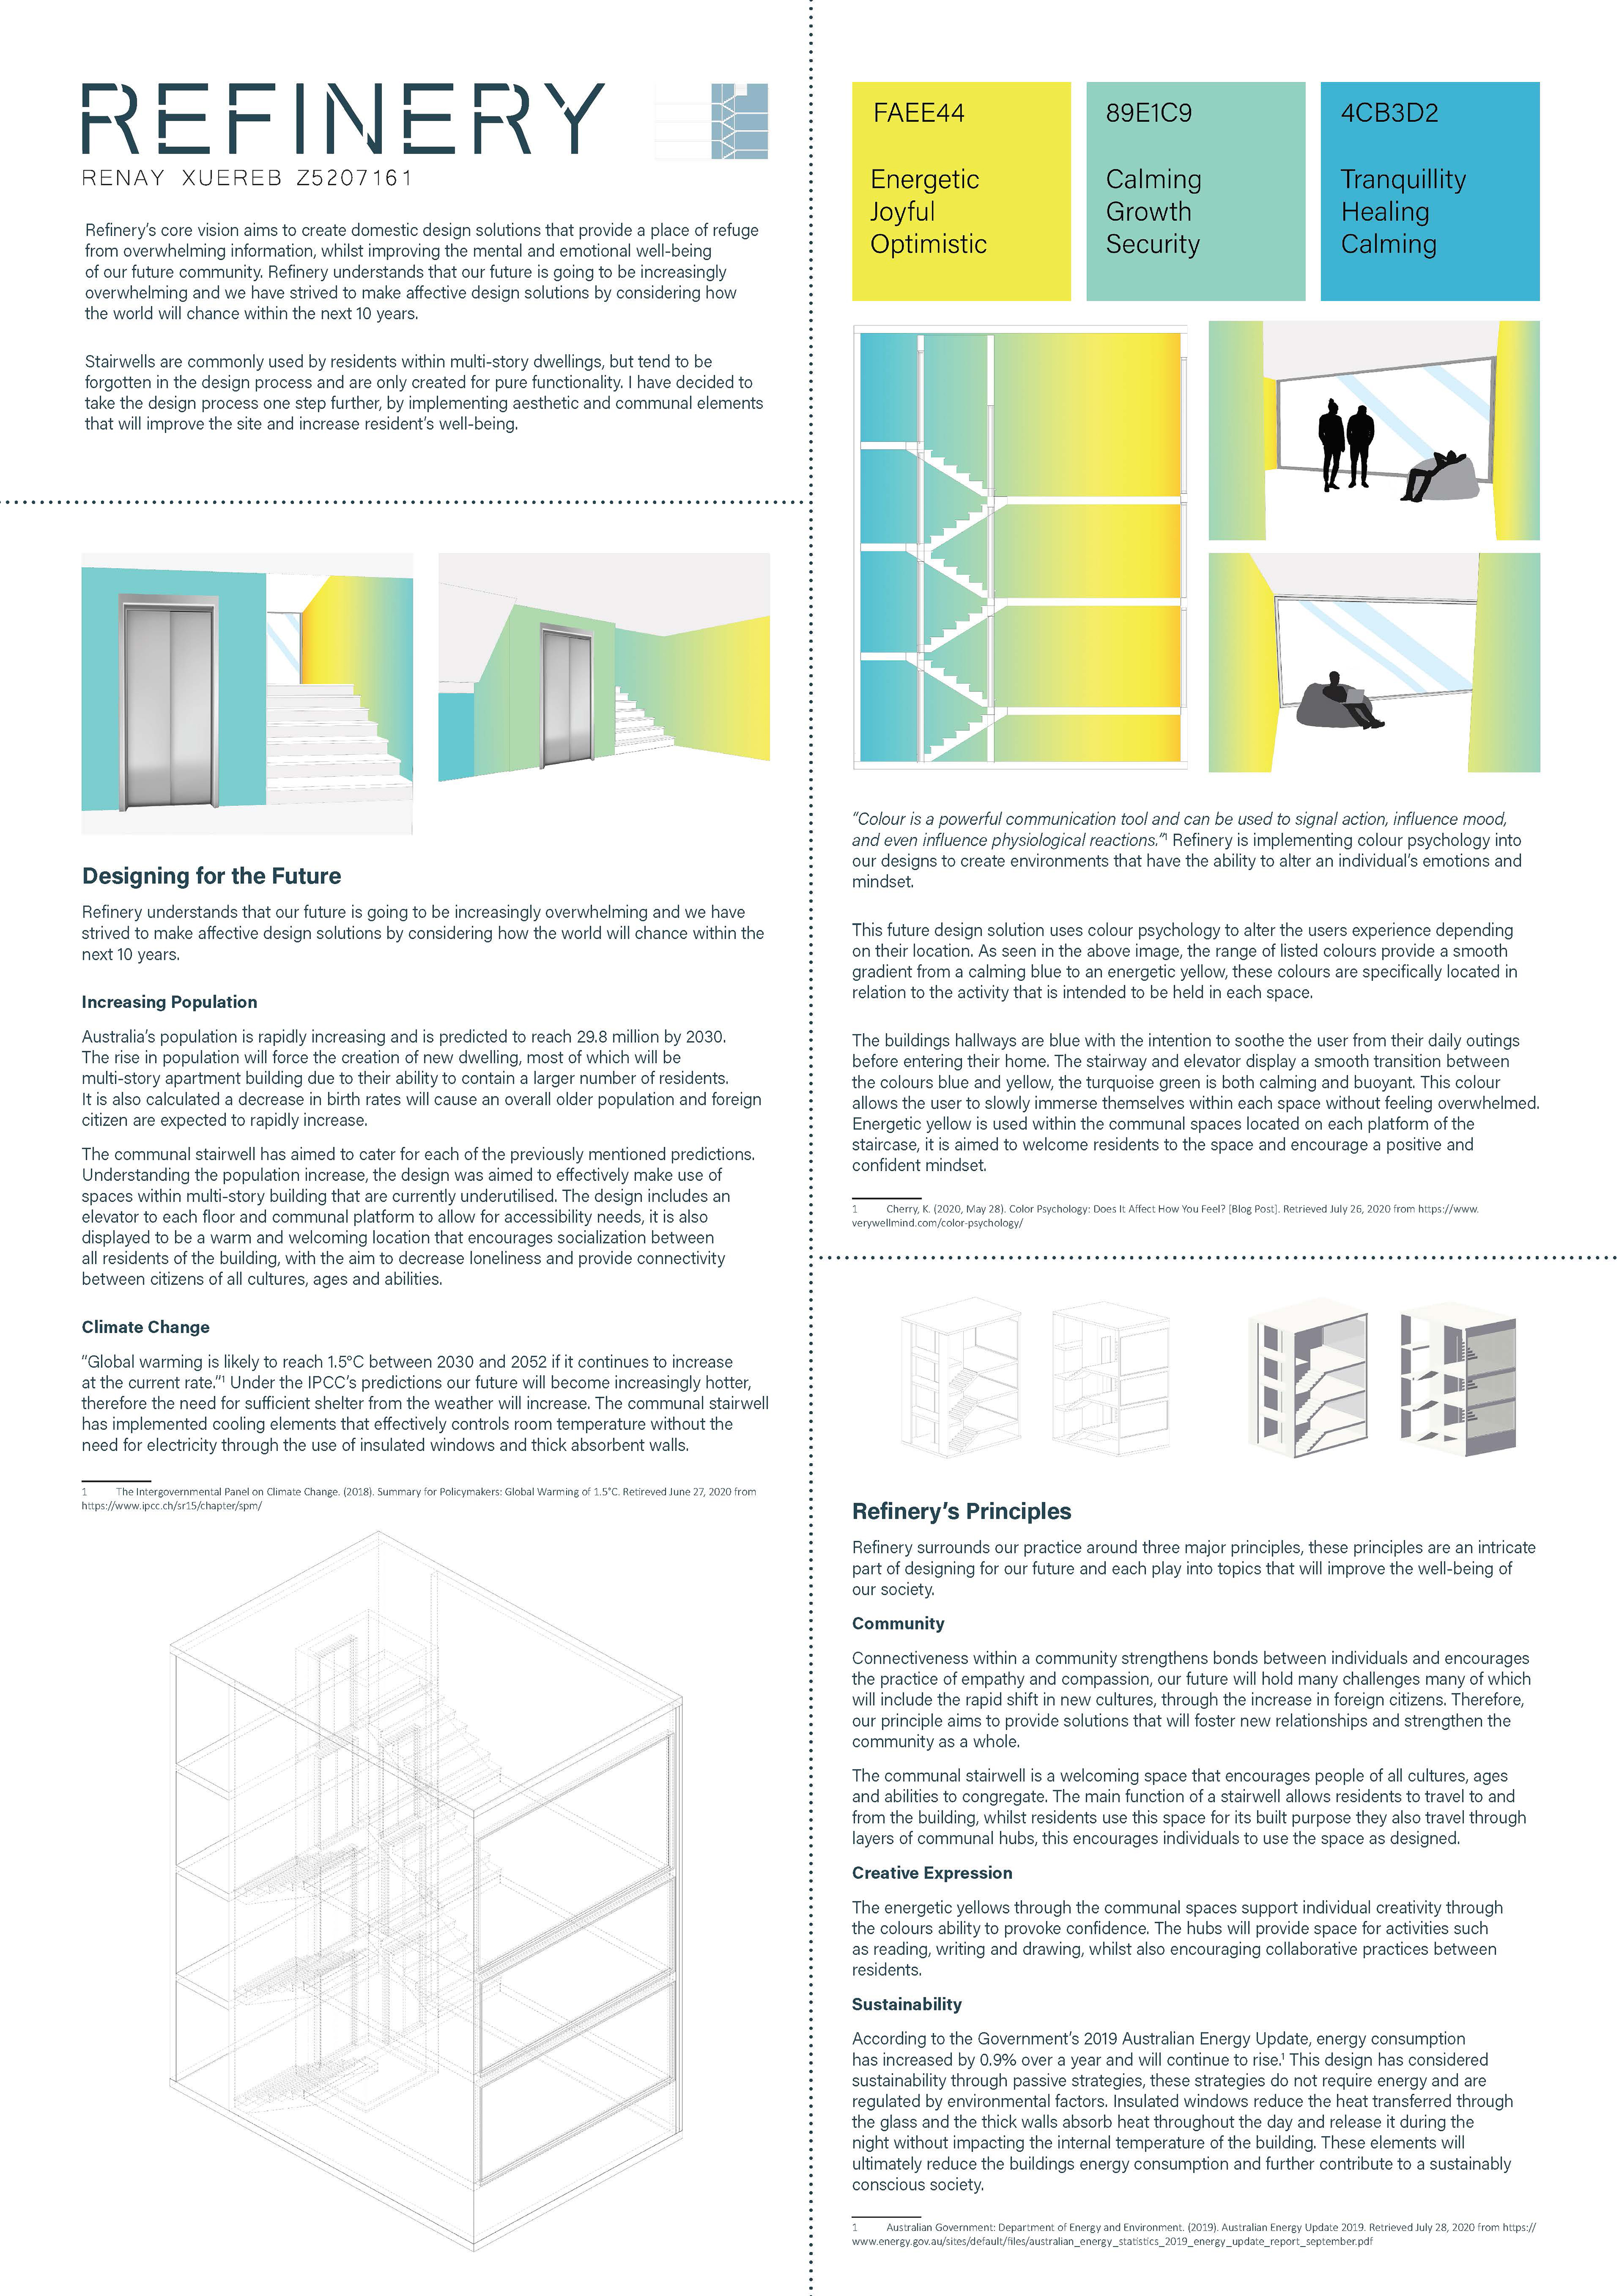 ddes2100_design_studio_3_finalist_designers_page_10_website_version.jpg